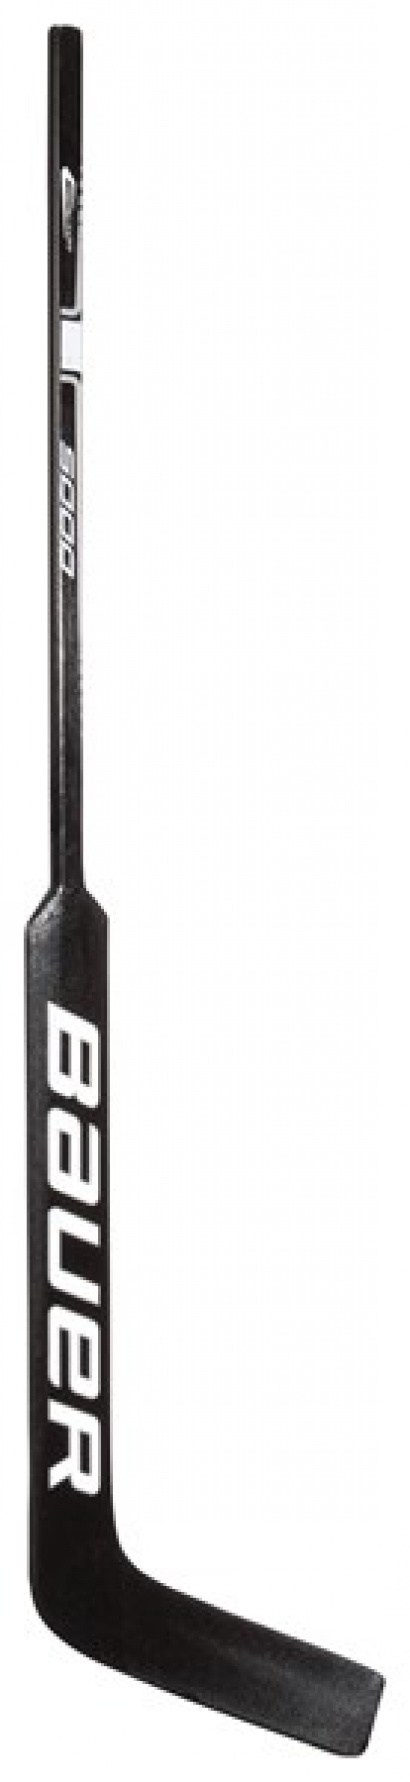 Goalie Stick Bauer Reactor 5000 Wood Sr P31/25